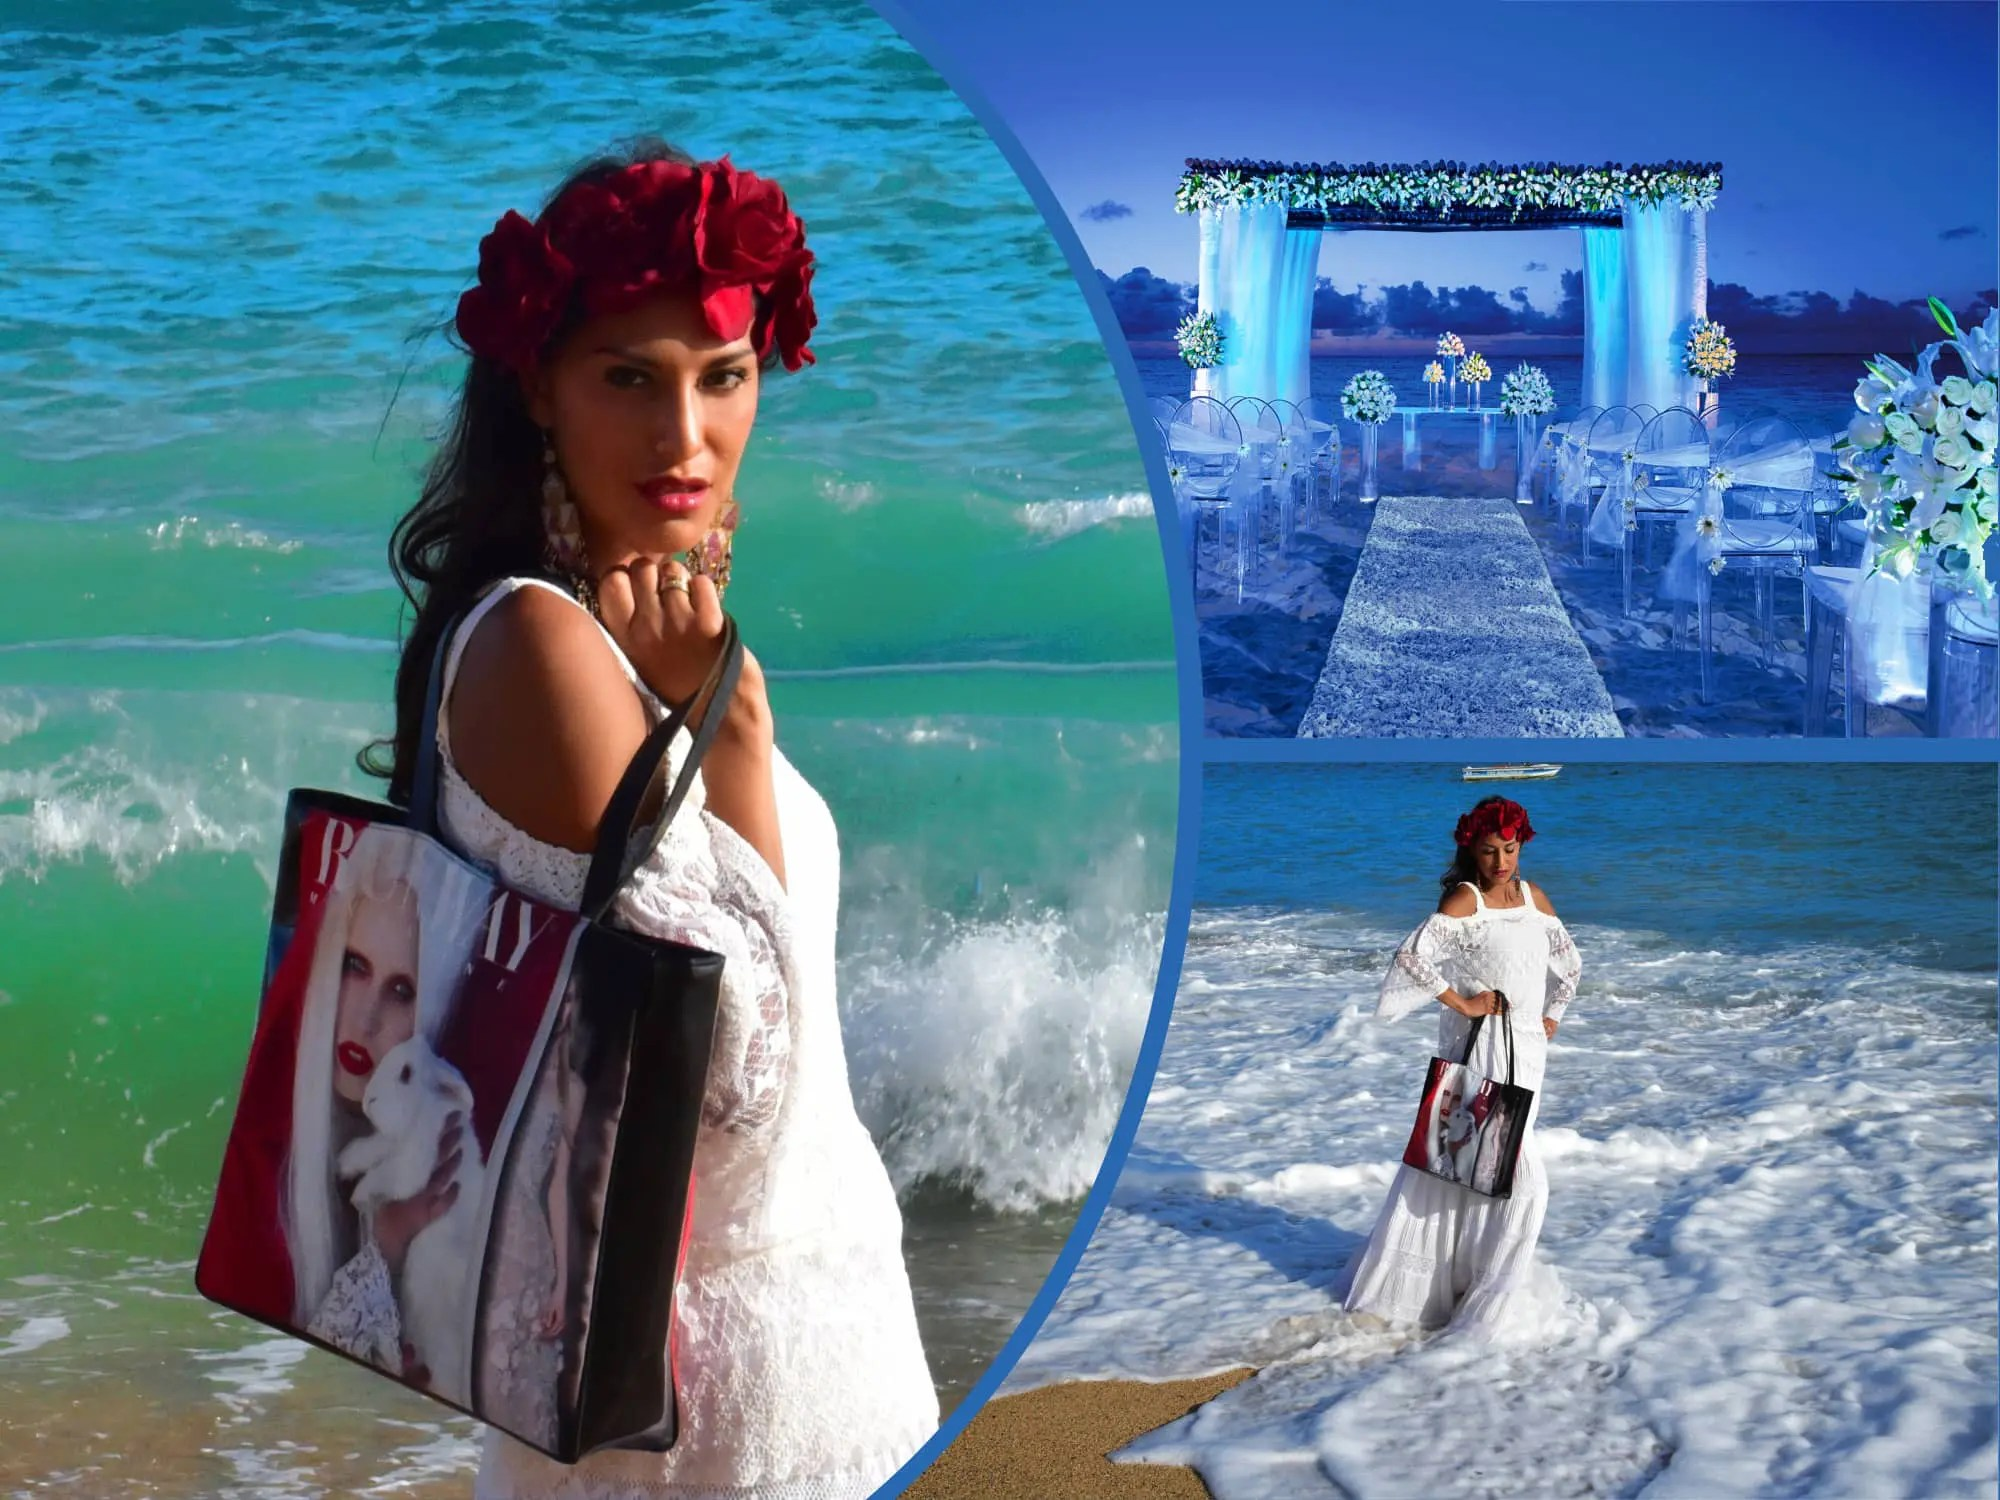 Runway-Magazine-Bag-Acapulco-Wedding-Destination-Eleonora-deGray-Runway-Magazine-USA-Runway-Magazine-France